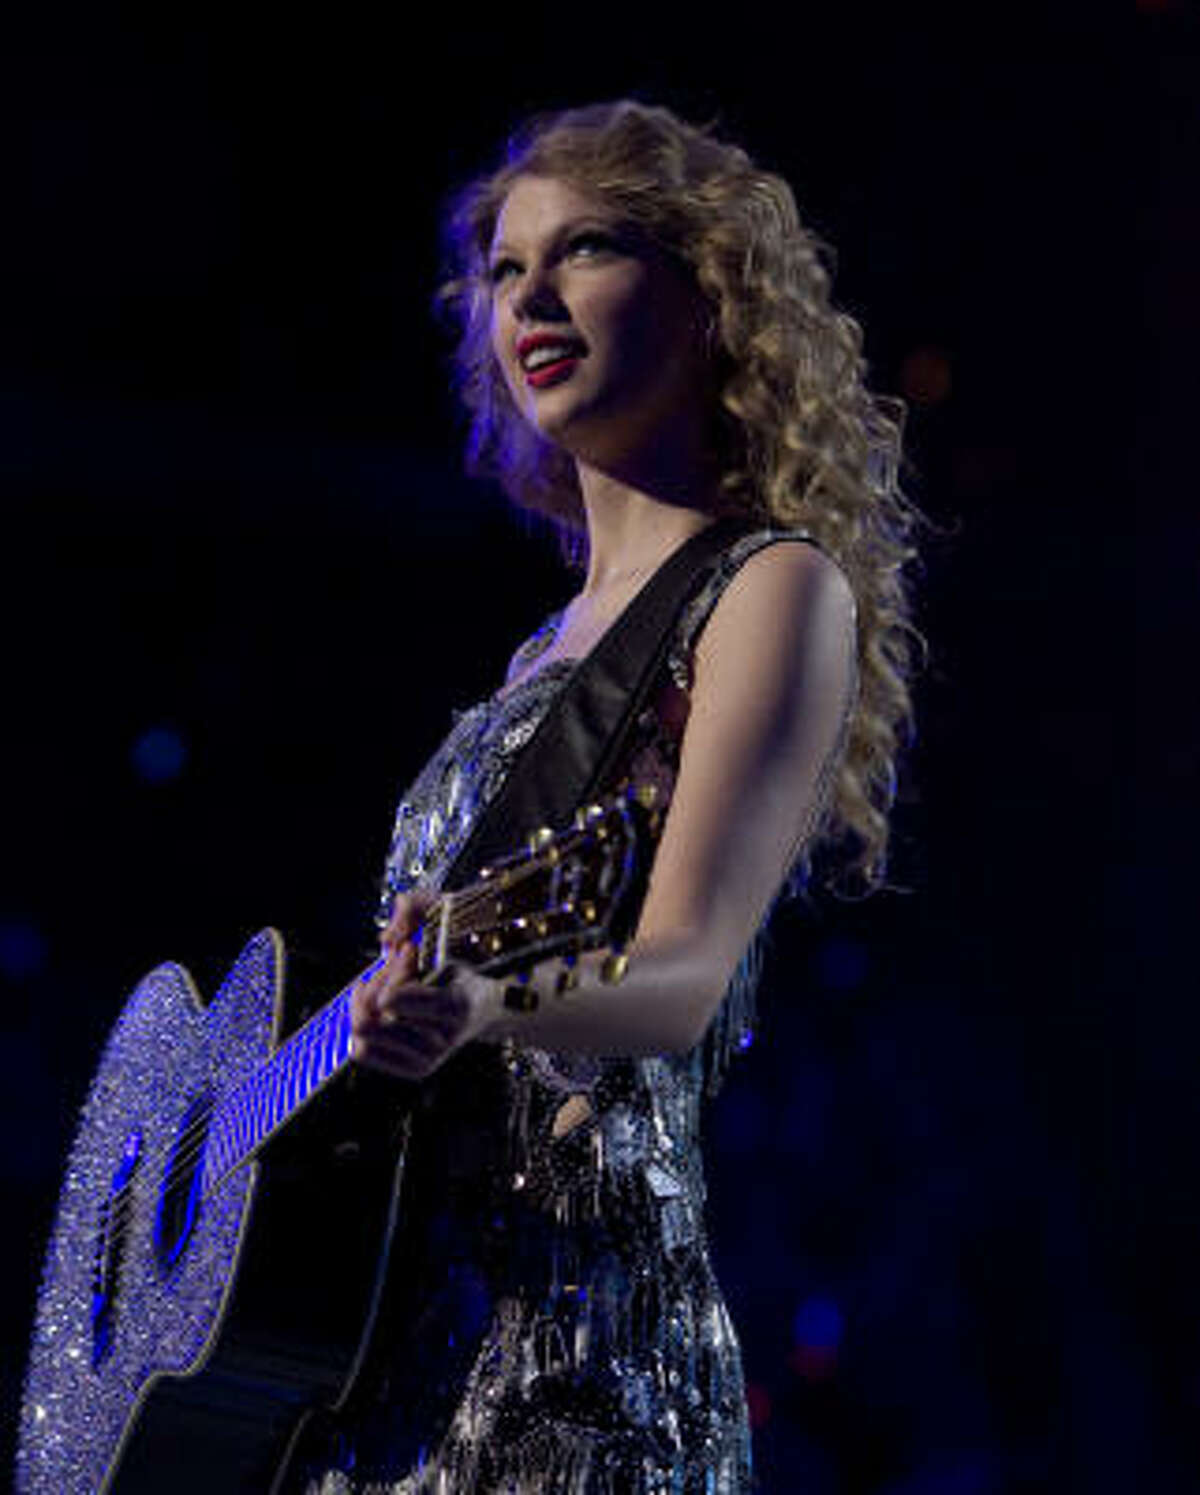 Taylor Swift performs during her Fearless Tour concert at Toyota Center in Houston, Texas.